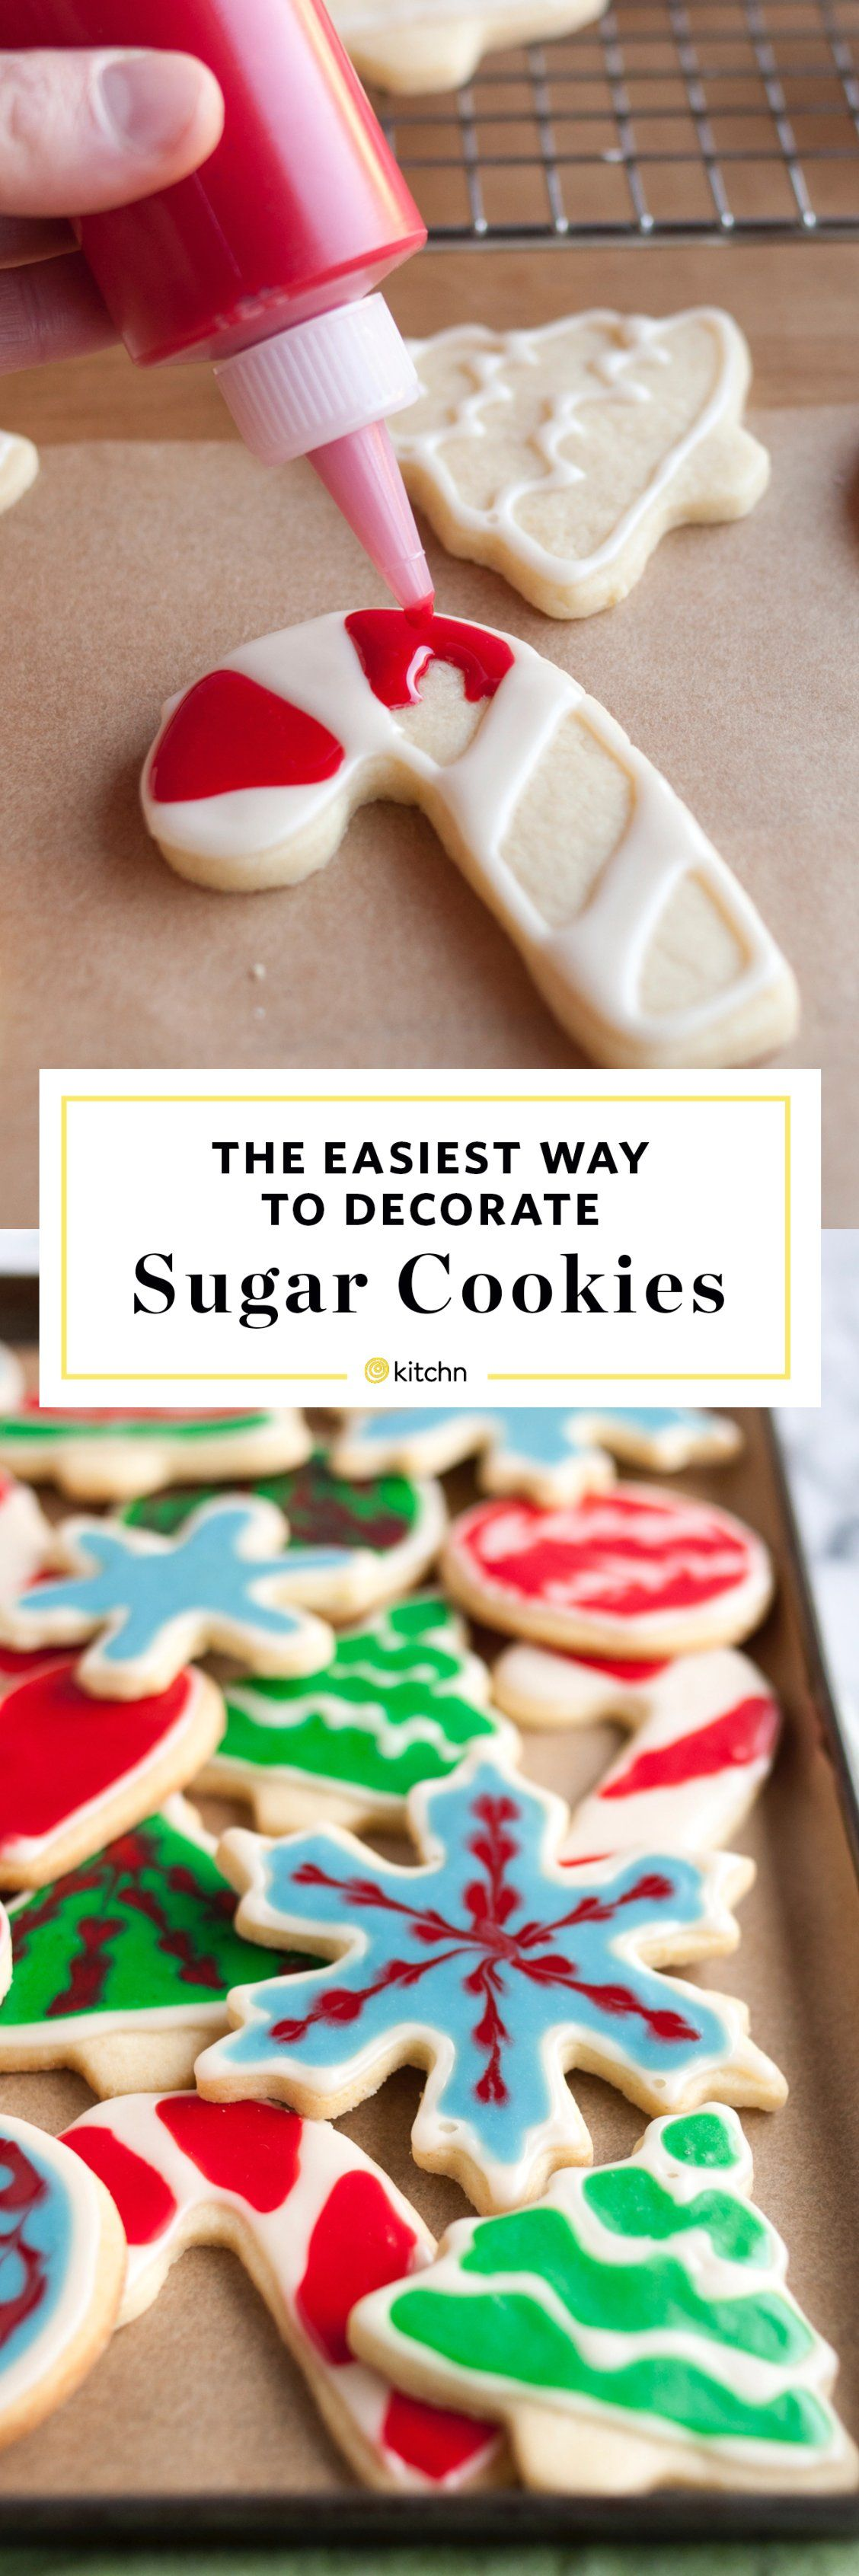 How to Decorate Cookies with Icing Recipe Christmas